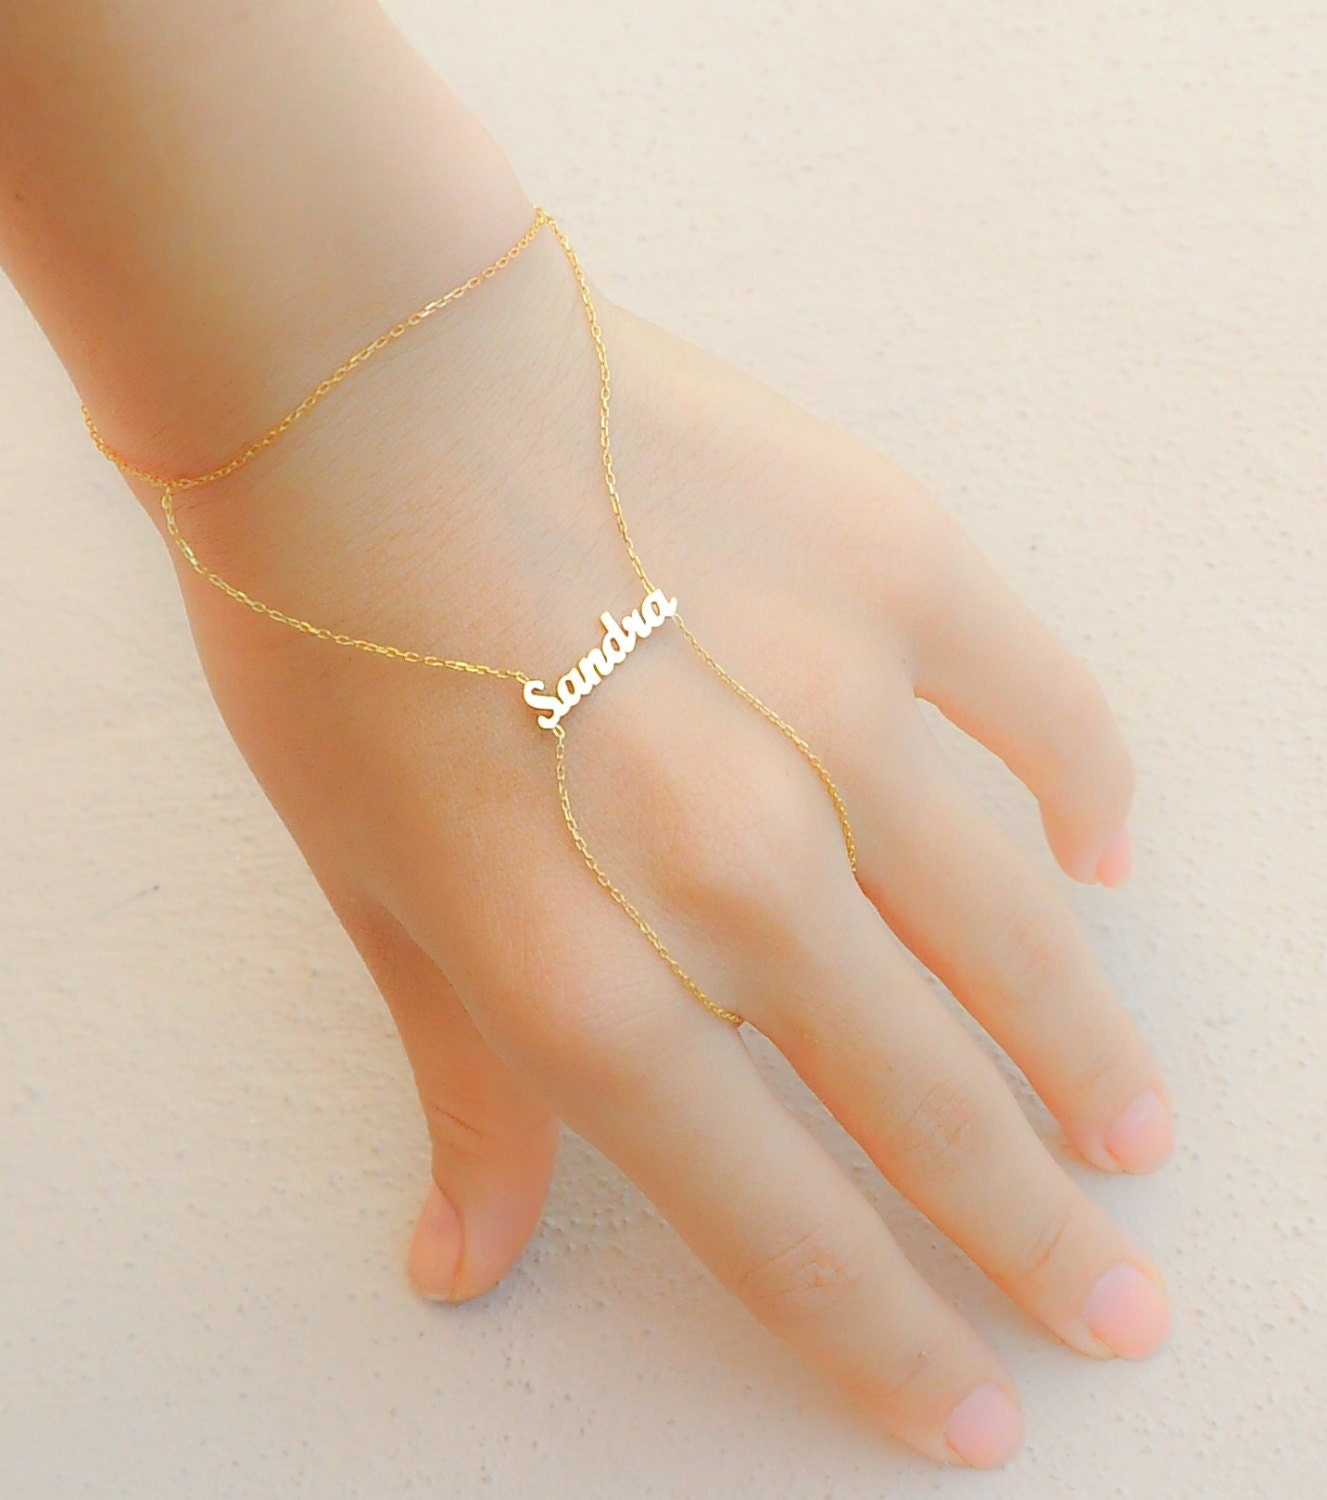 Personalized Name Bracelet Gold Hand Chain Slave by ...